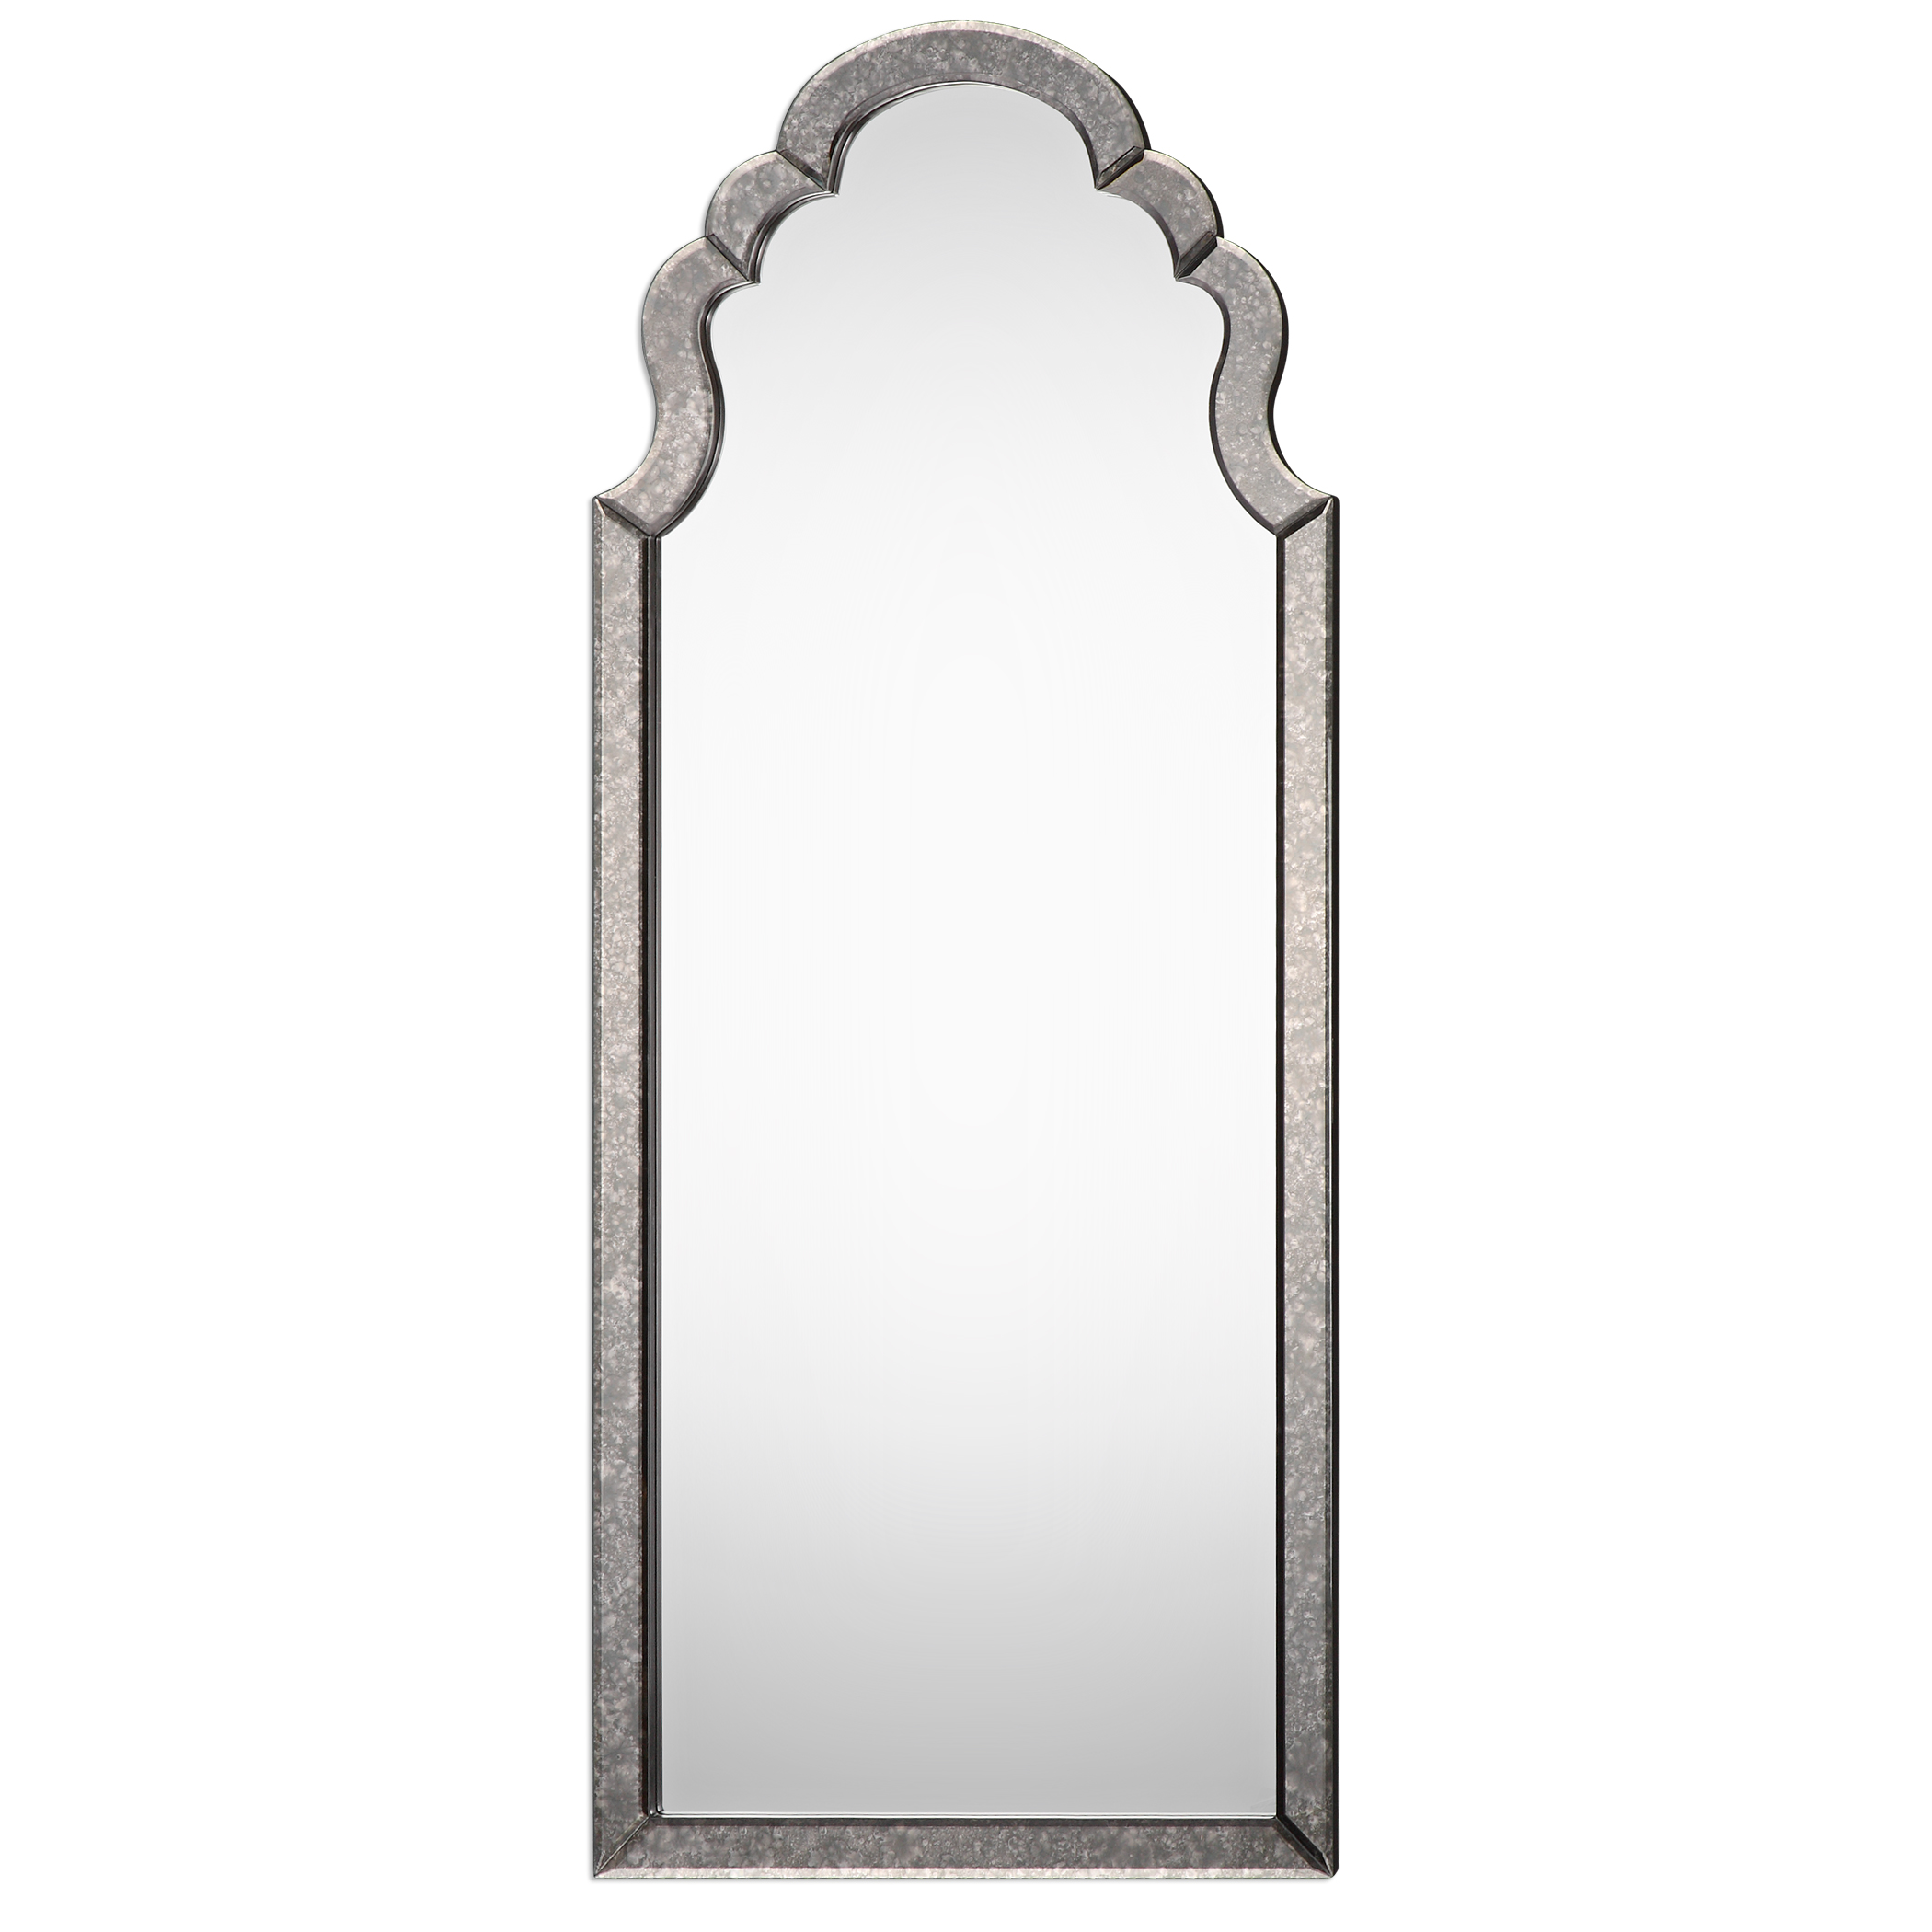 Uttermost Mirrors Lunel Arched Mirror - Item Number: 09037